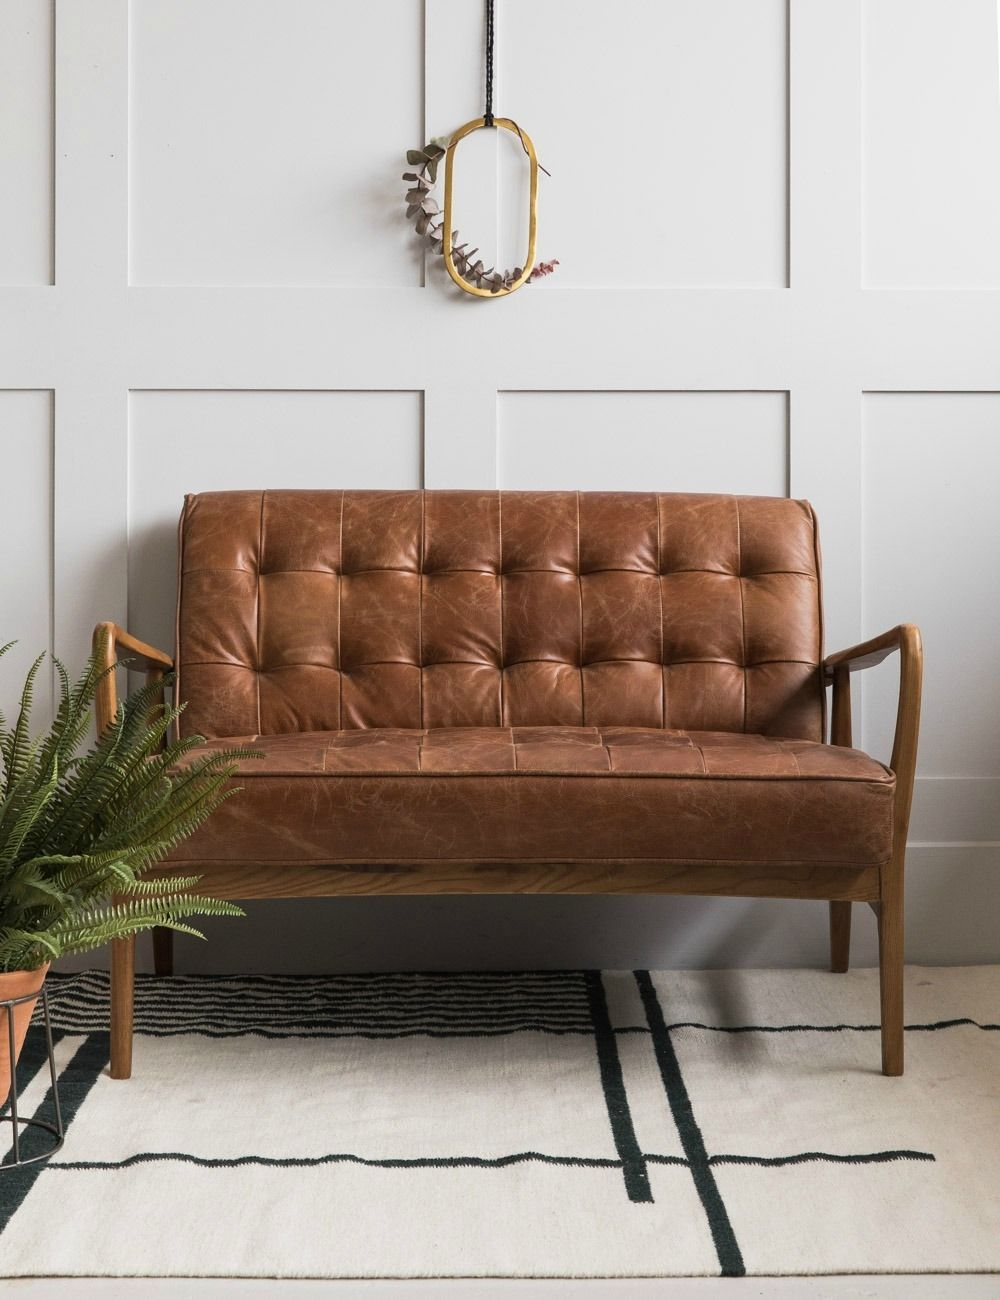 Mid Century Button And Stud Brown Leather Two Seater Brown Leather Chair Living Room Mid Century Modern Leather Couch Retro Sofa